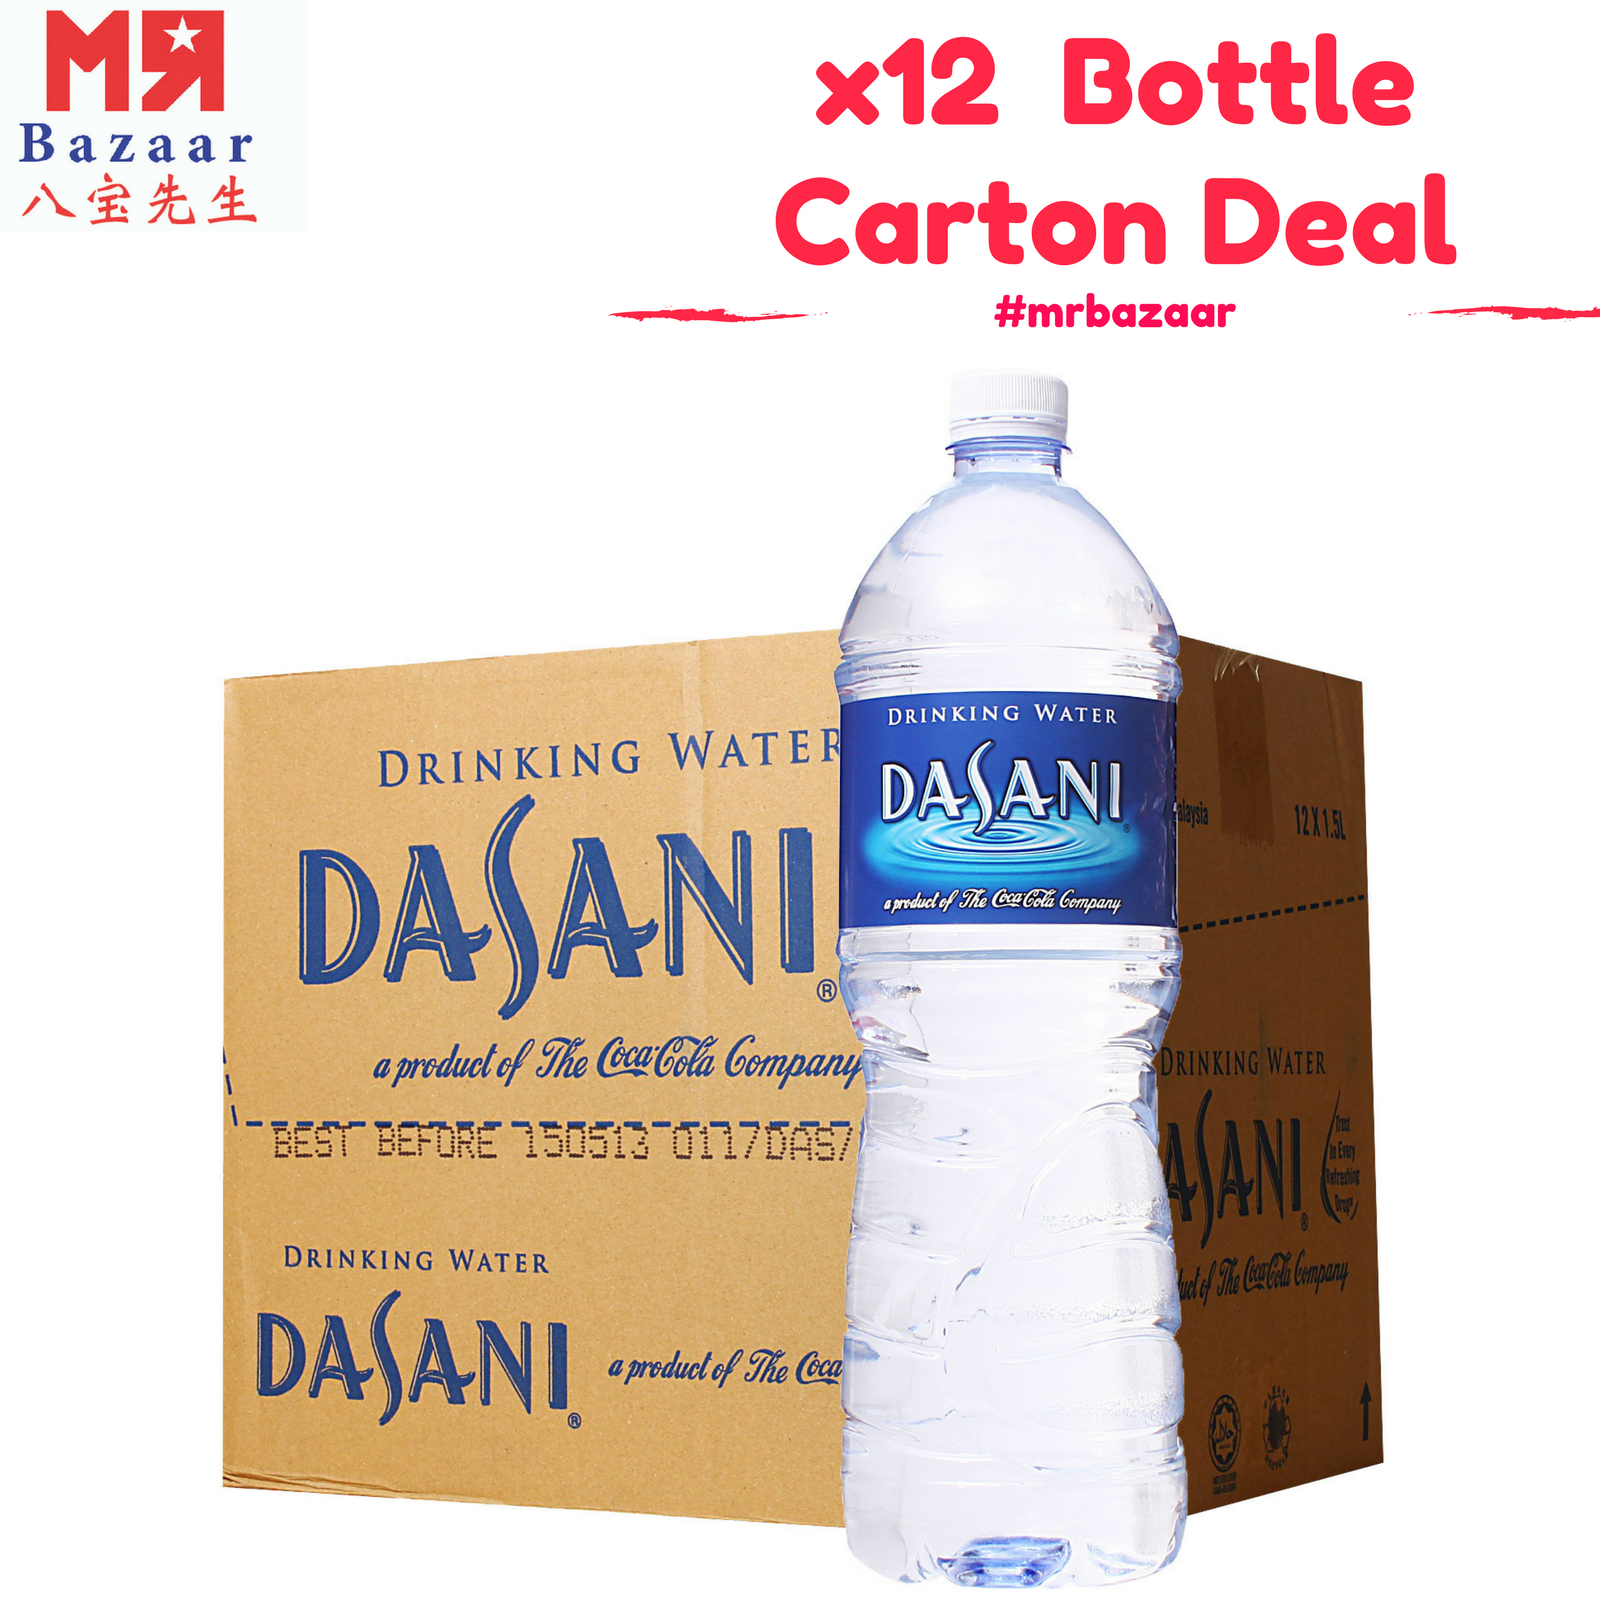 Dasani Pure Drinking Water (1.5 L) x 12 Bottles Carton Deal ('Mineral Water')